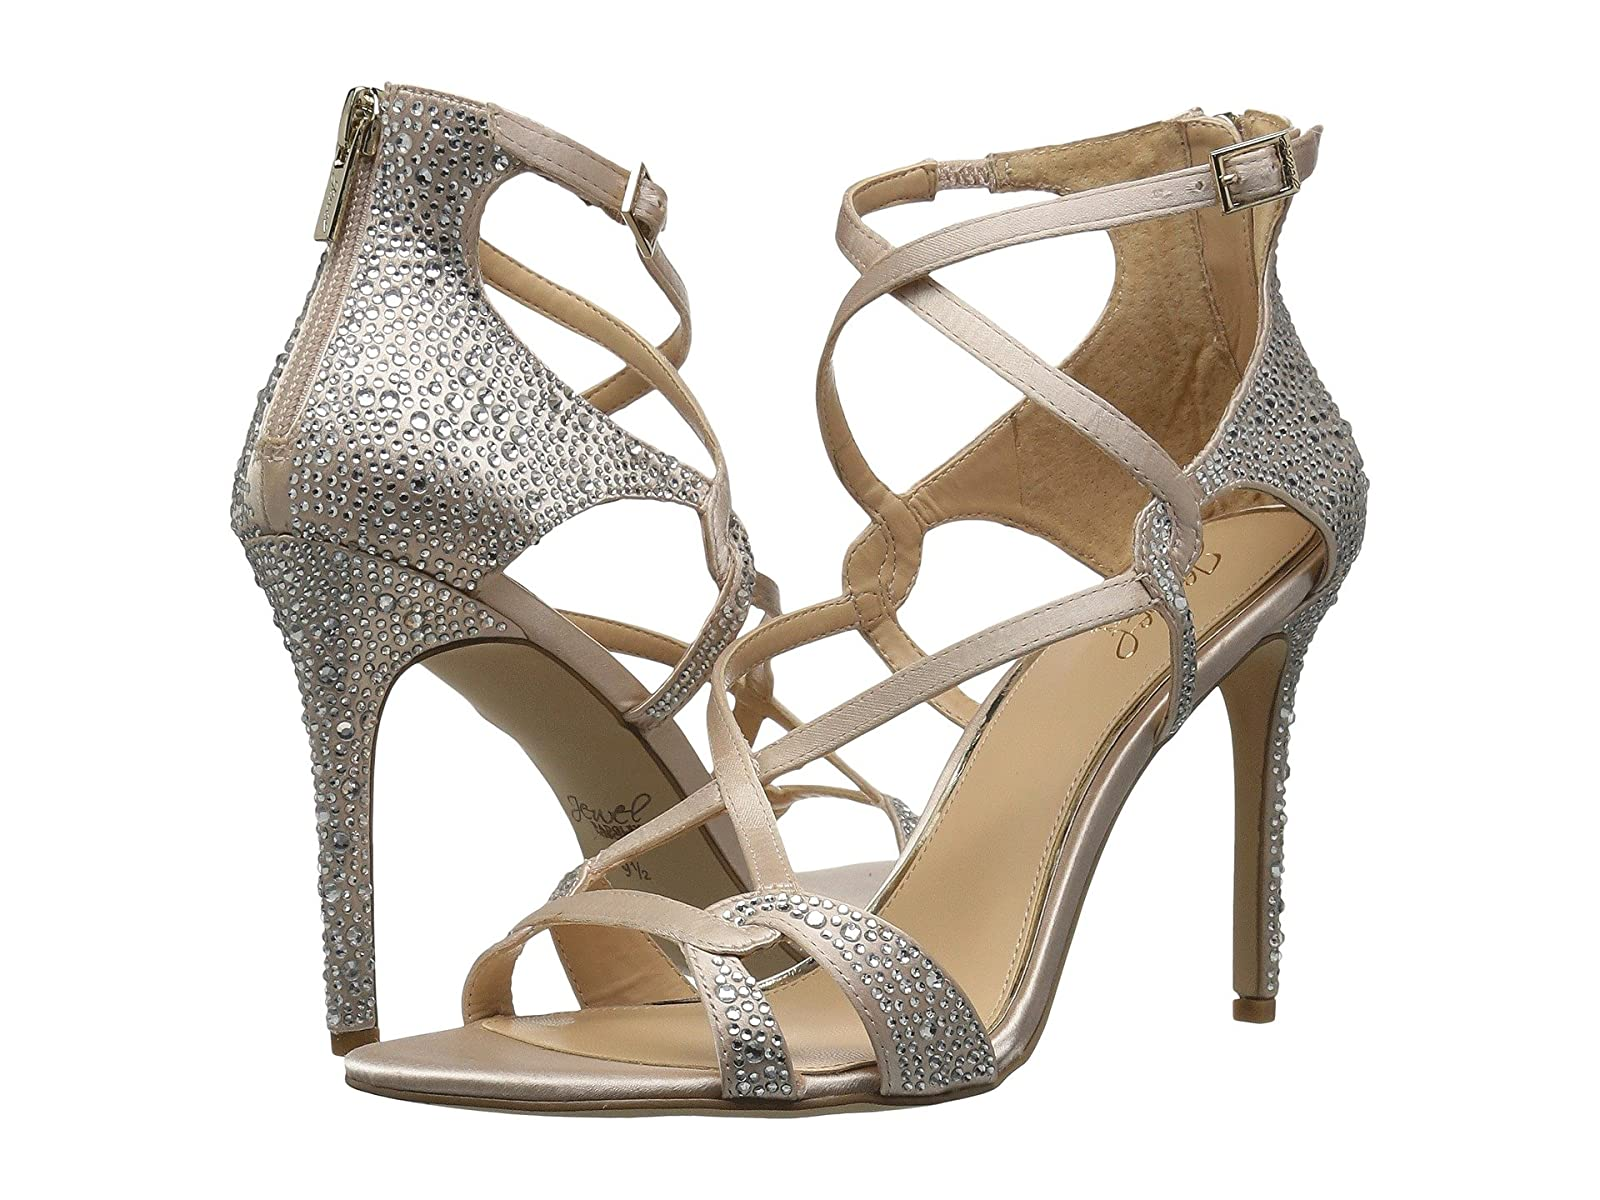 Jewel Badgley Mischka Aliza IICheap and distinctive eye-catching shoes